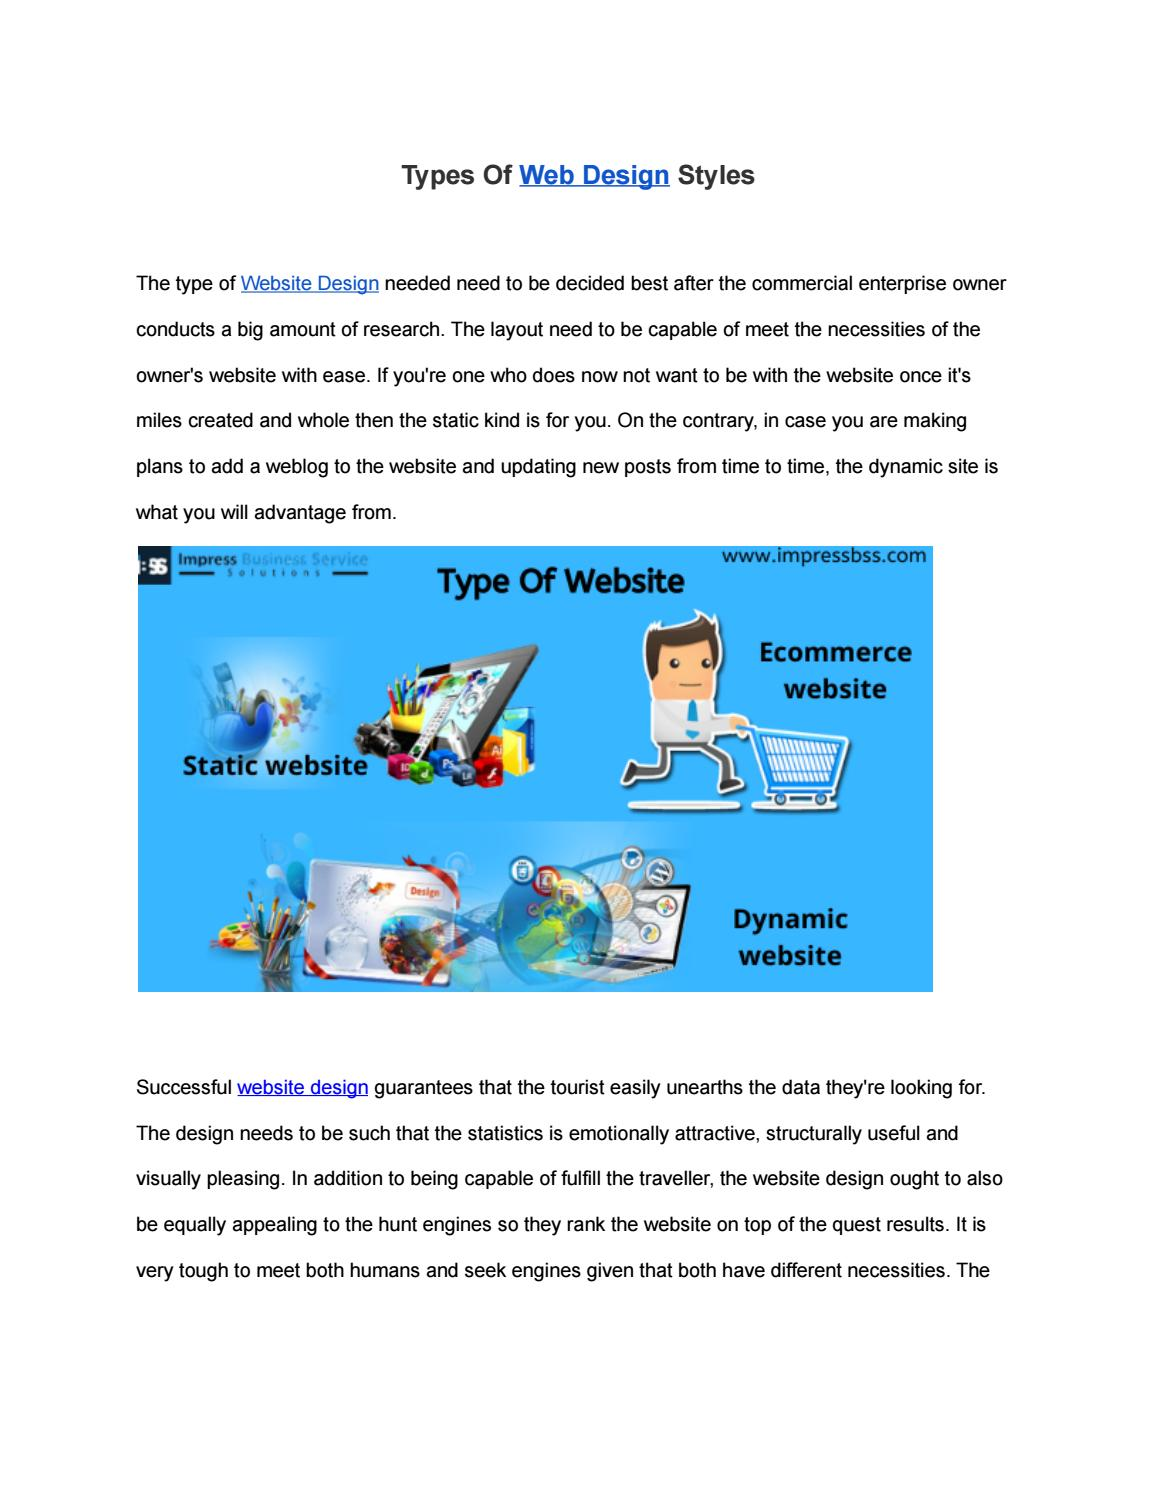 Types Of Web Design Styles By Impressbss Issuu